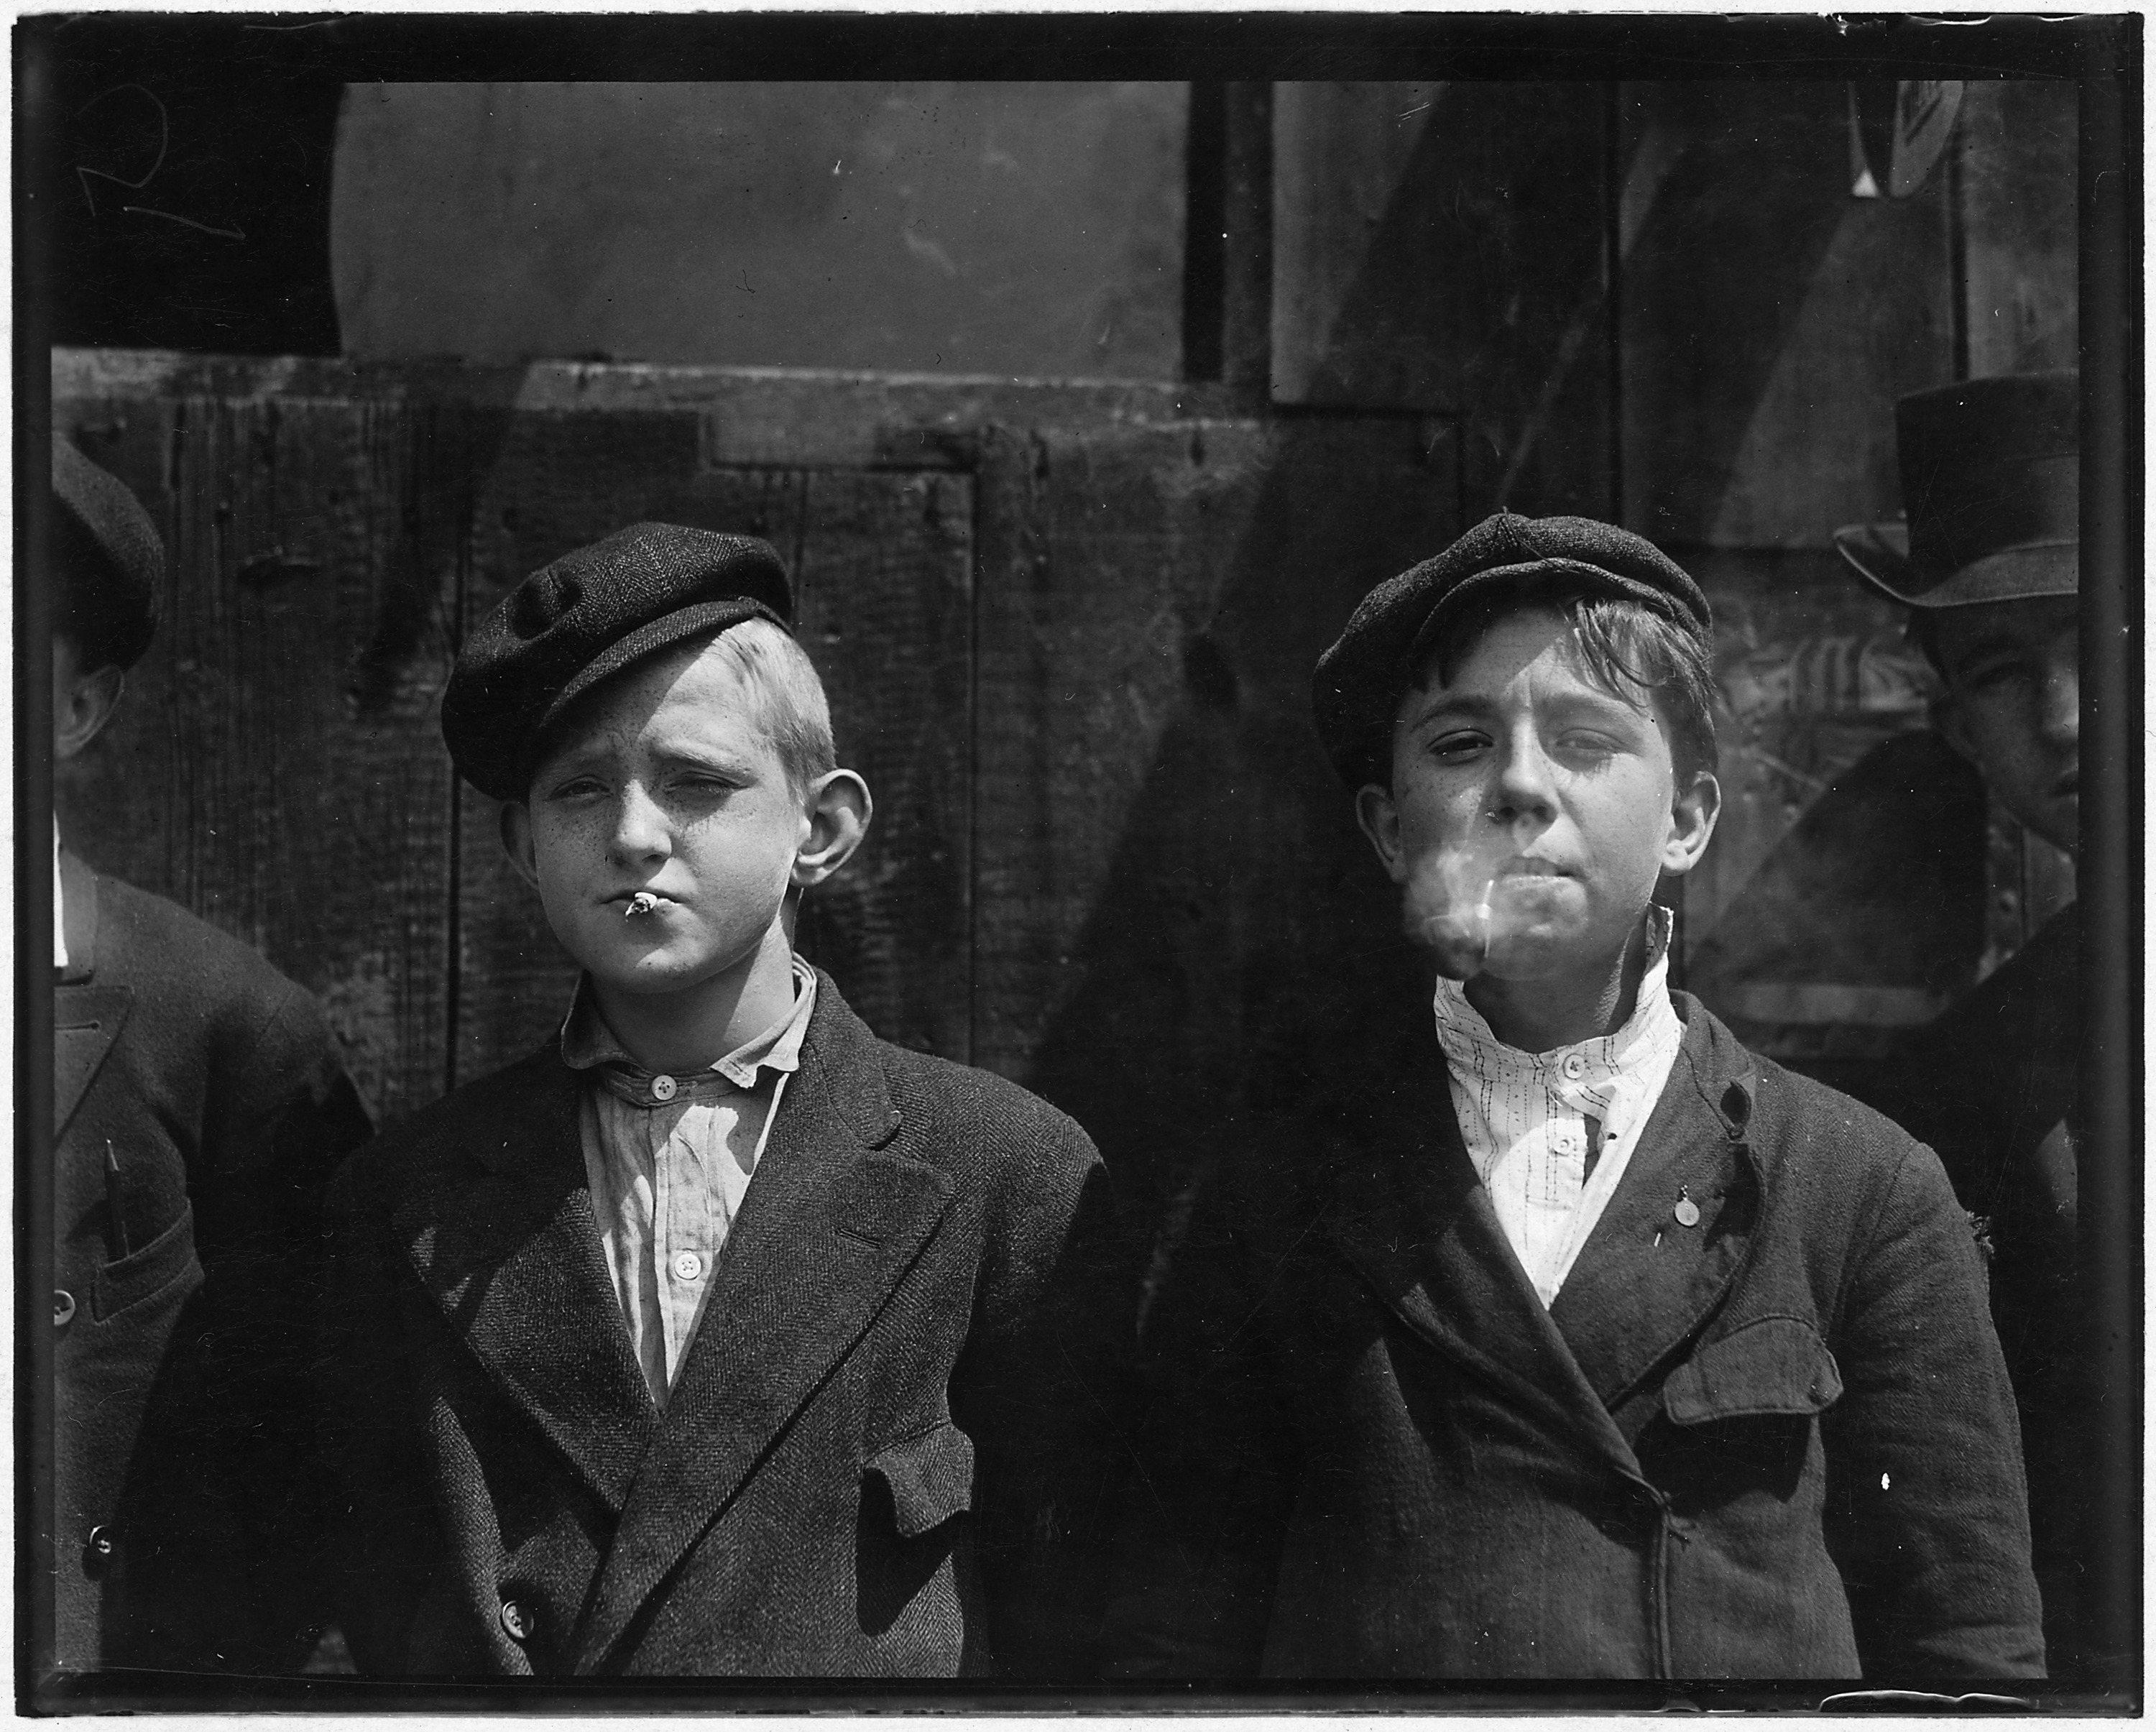 11-00_A.M._Newsies_at_Skeeters_Branch._They_were_all_smoking._St._Louis,_MO._-_NARA_-_523293